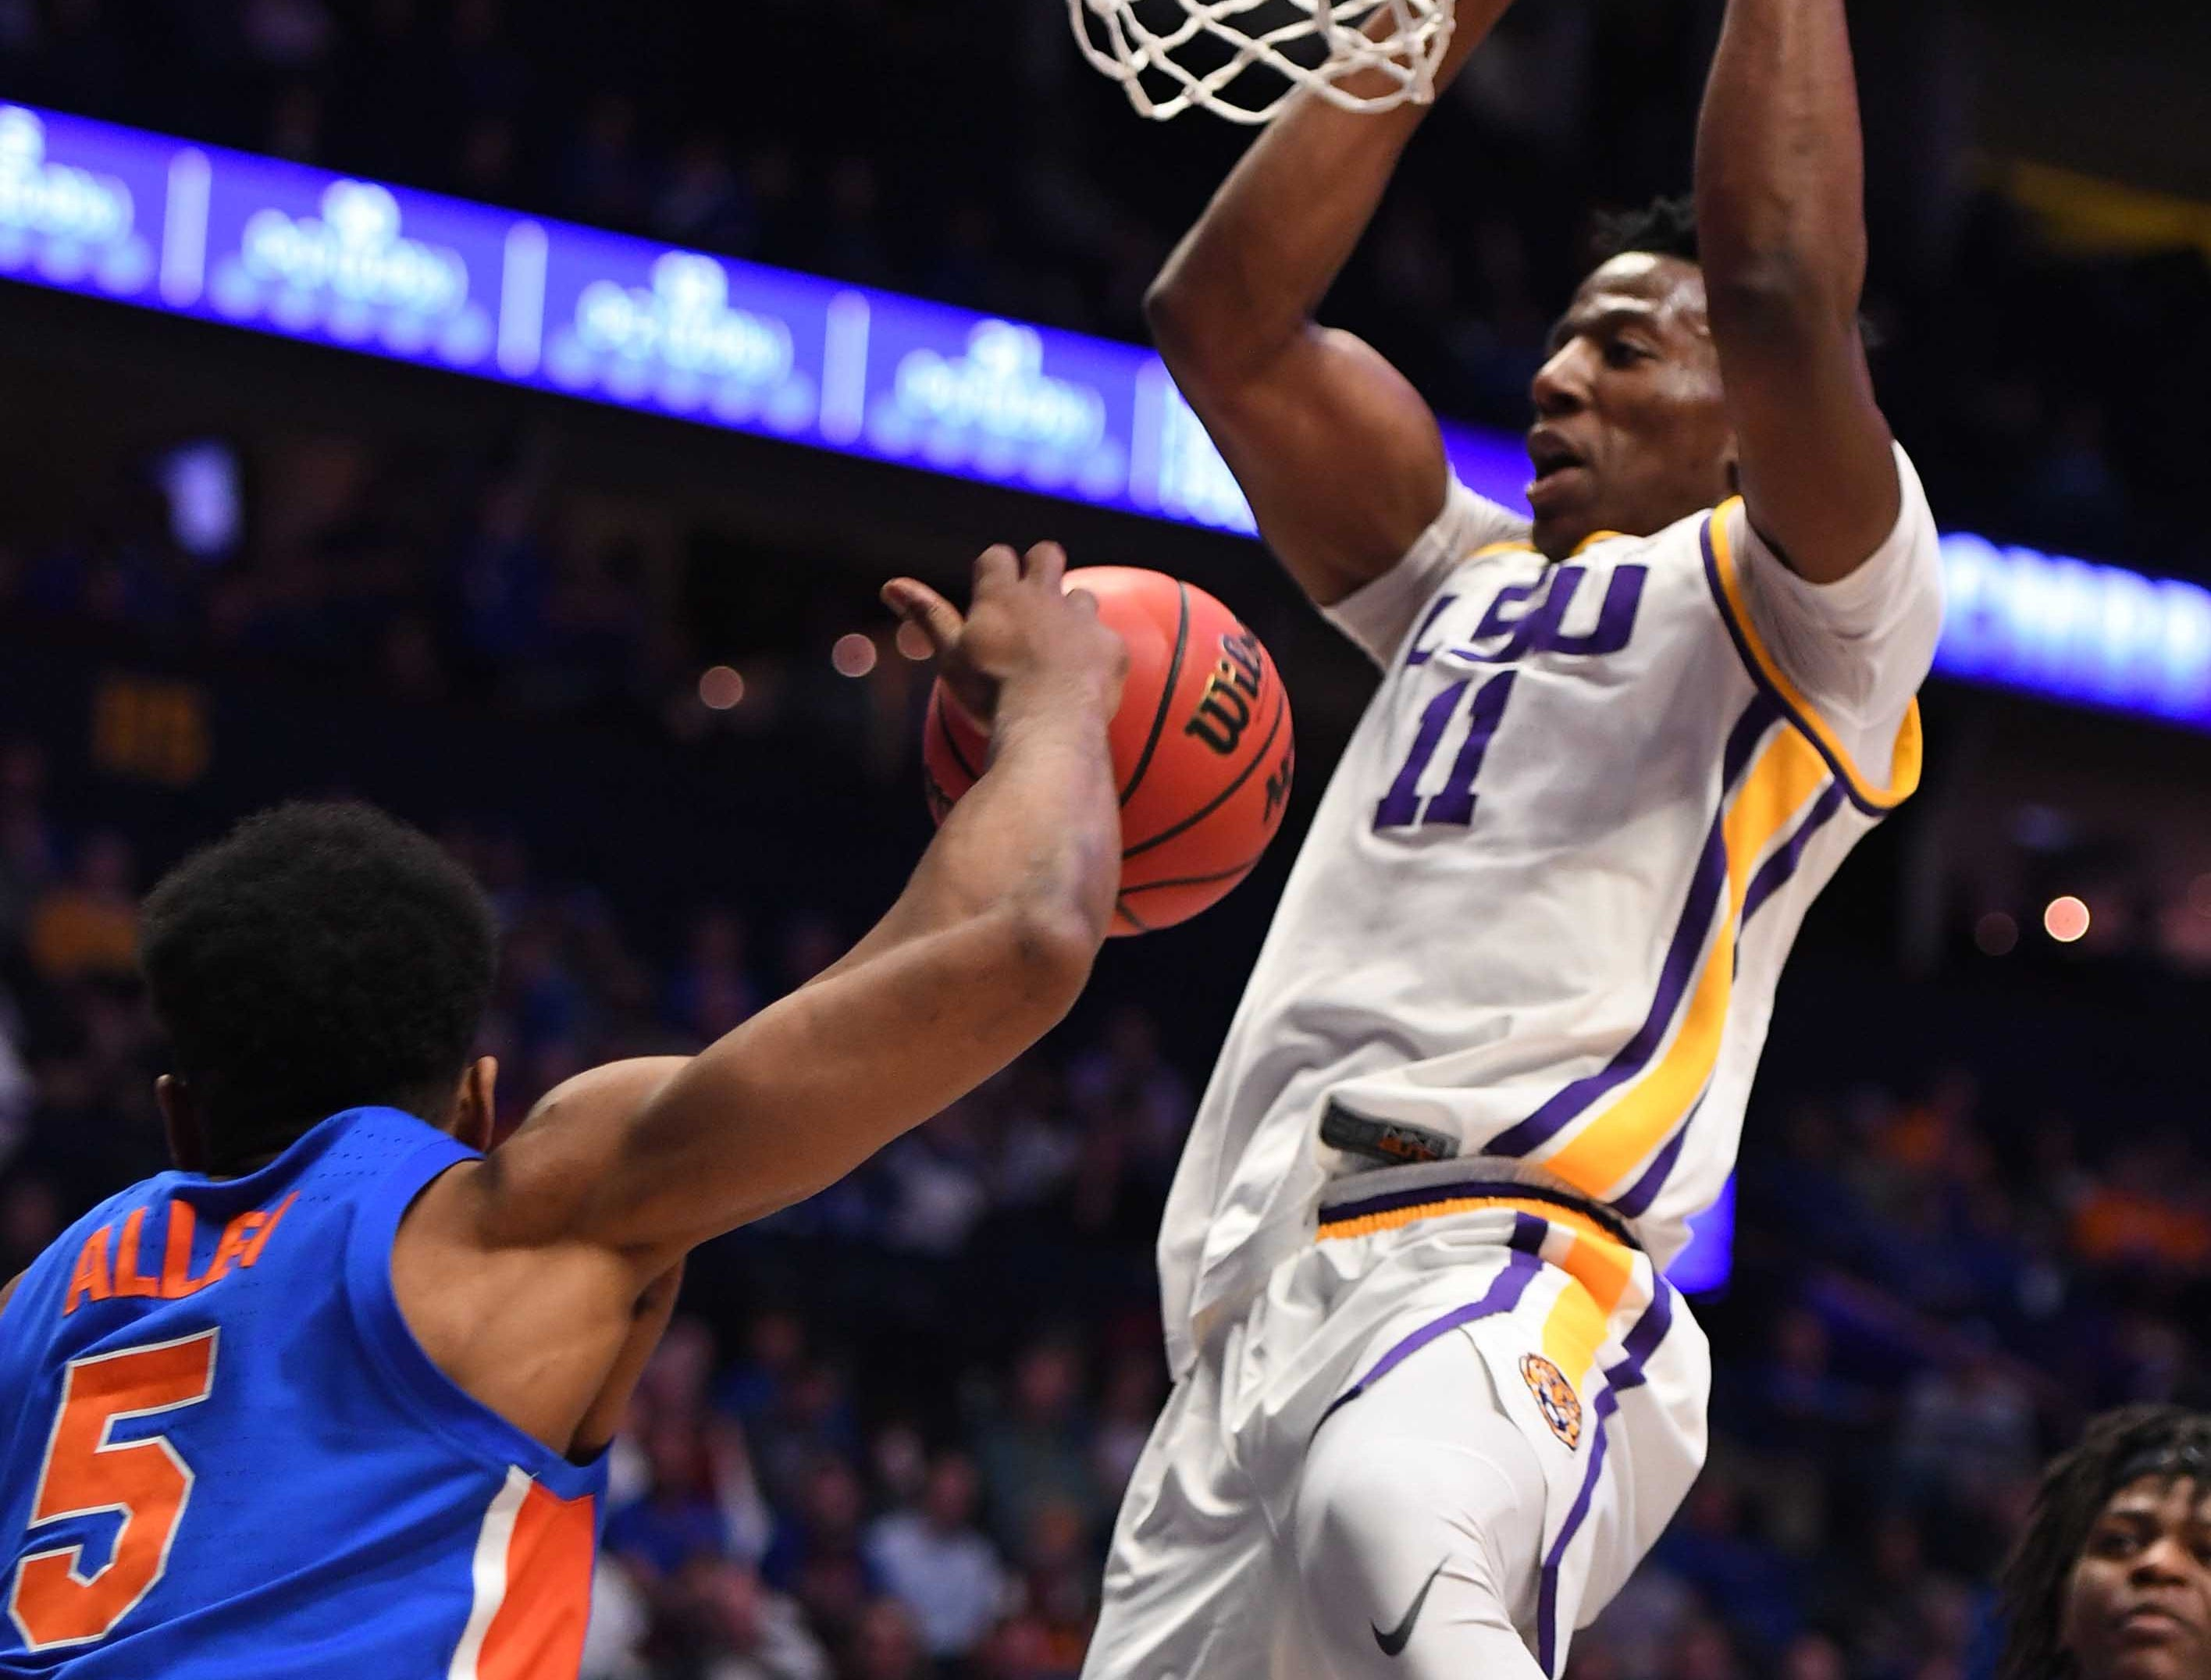 Mar 15, 2019; Nashville, TN, USA; LSU Tigers forward Kavell Bigby-Williams (11) dunks over Florida Gators guard KeVaughn Allen (5) during the first half of the SEC conference tournament at Bridgestone Arena. Mandatory Credit: Christopher Hanewinckel-USA TODAY Sports